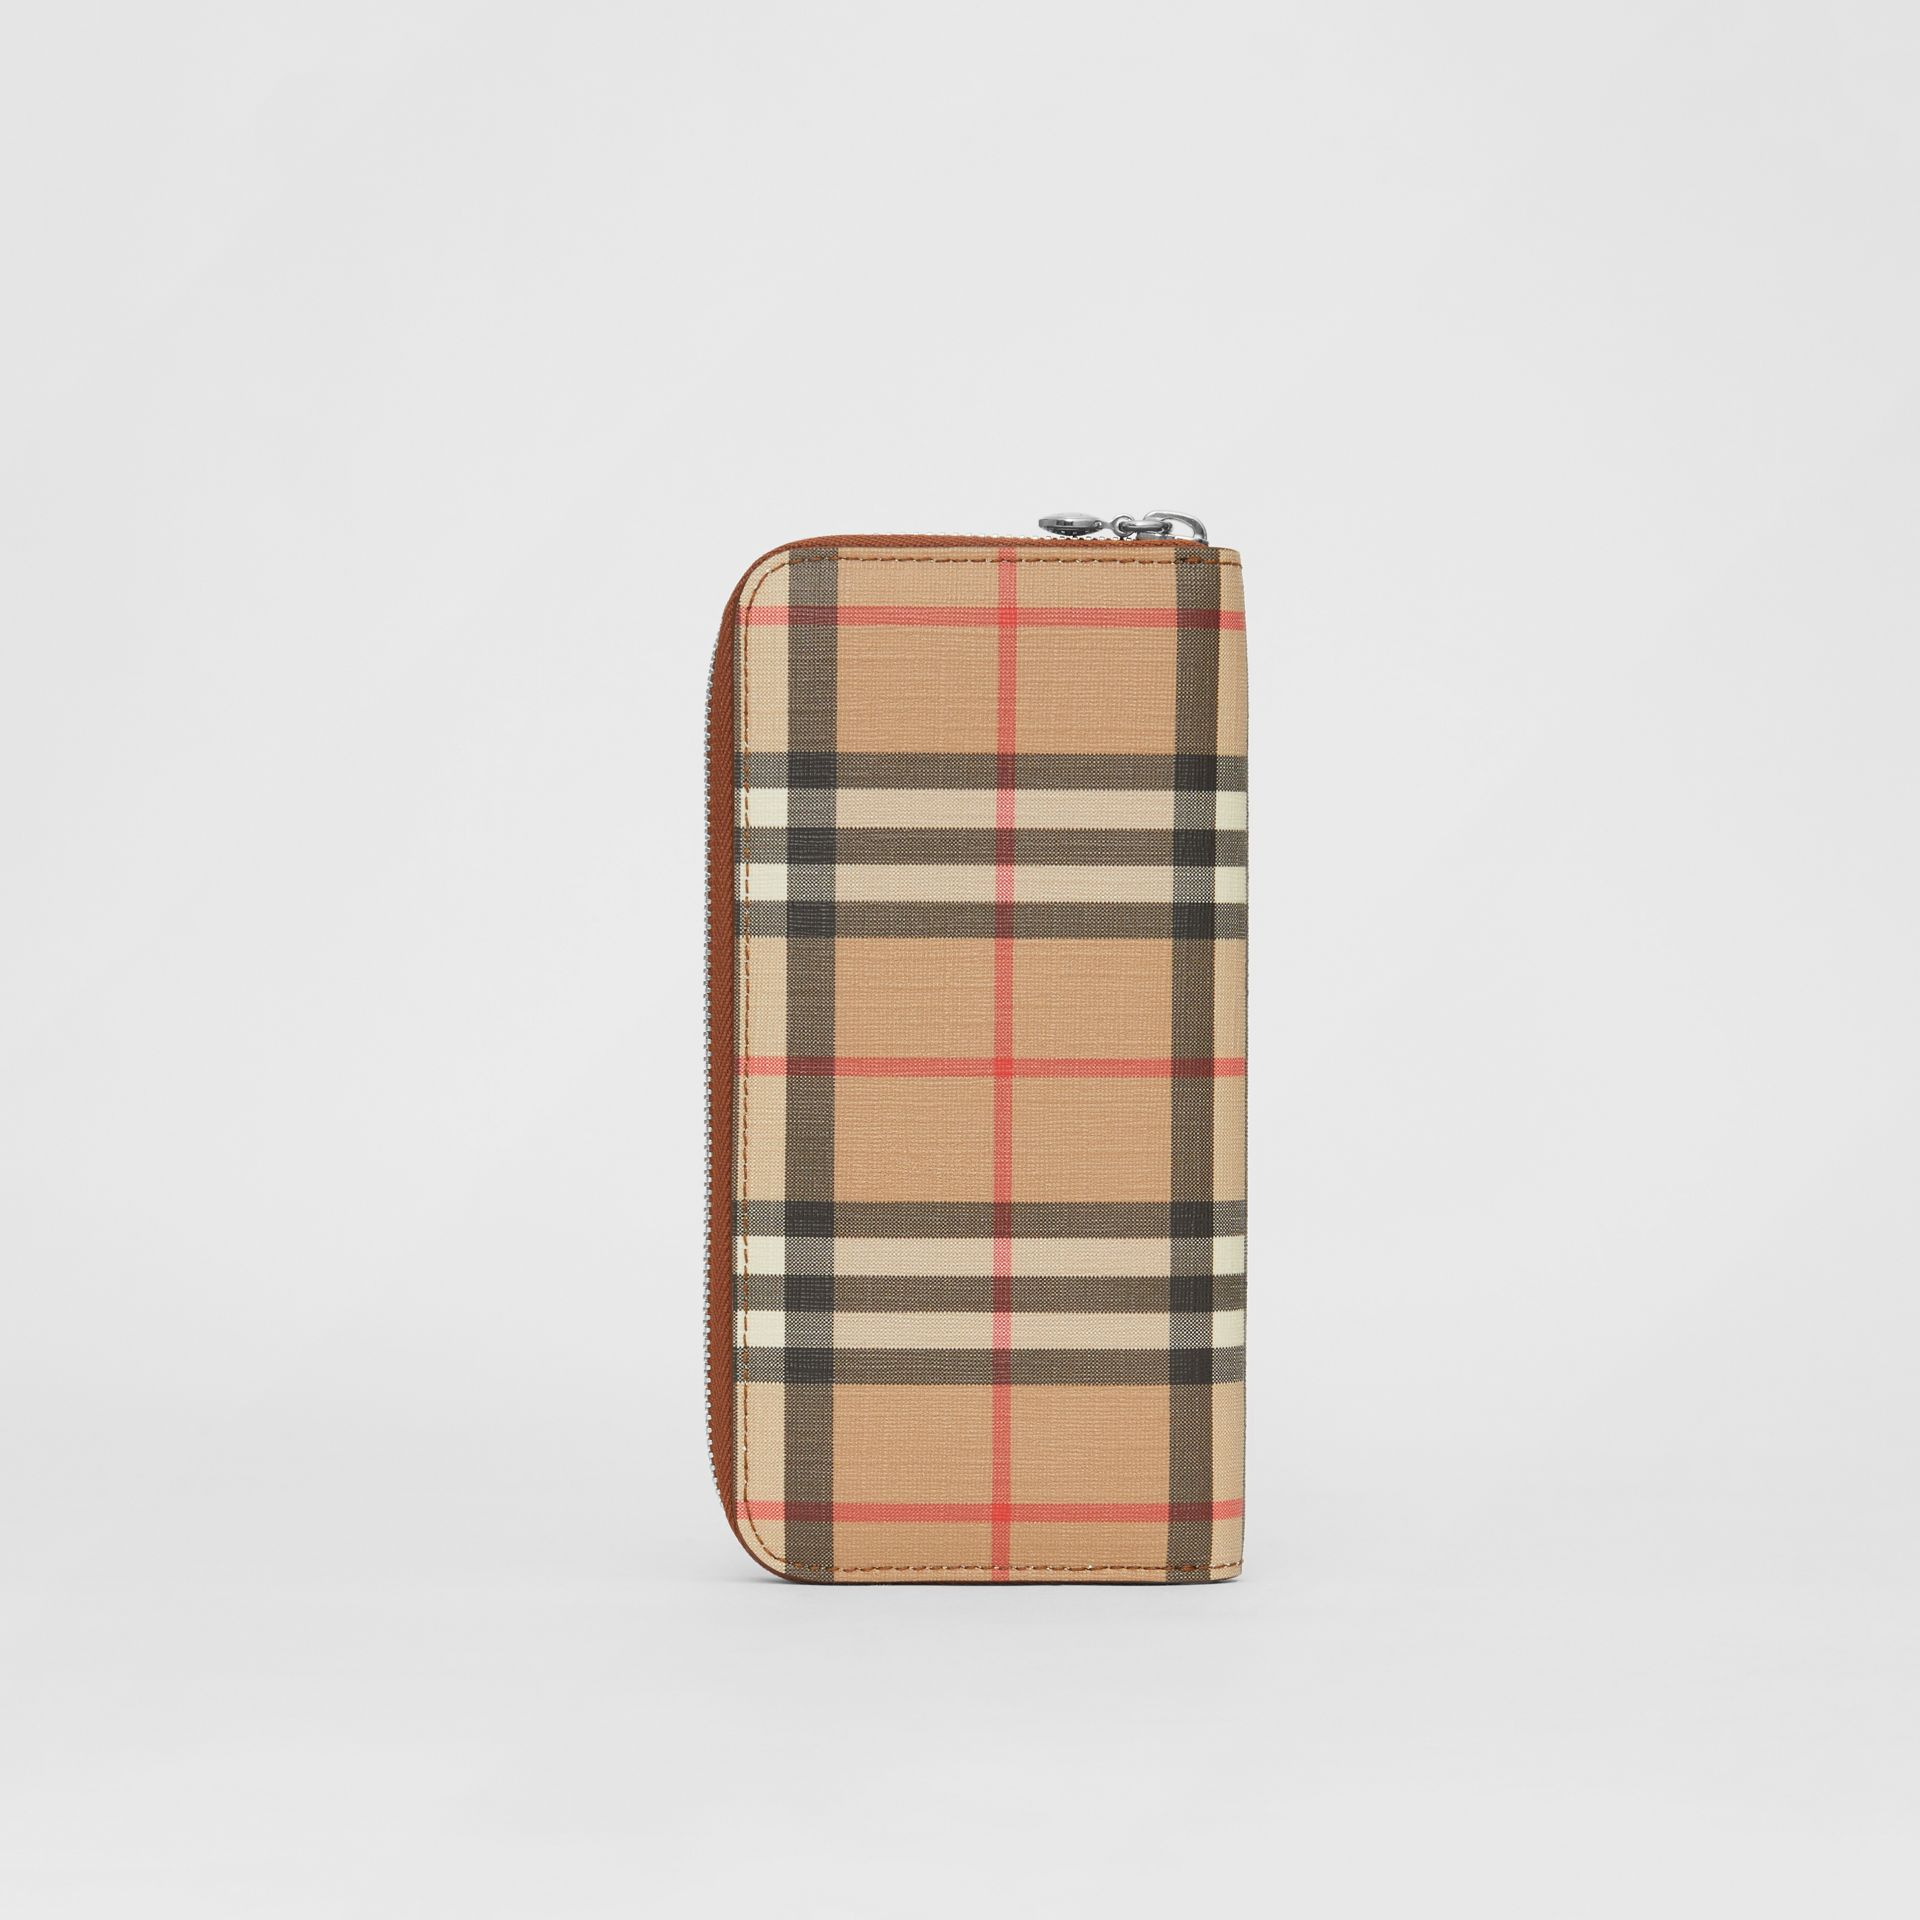 Vintage Check and Leather Ziparound Wallet in Malt Brown - Women | Burberry Australia - gallery image 4